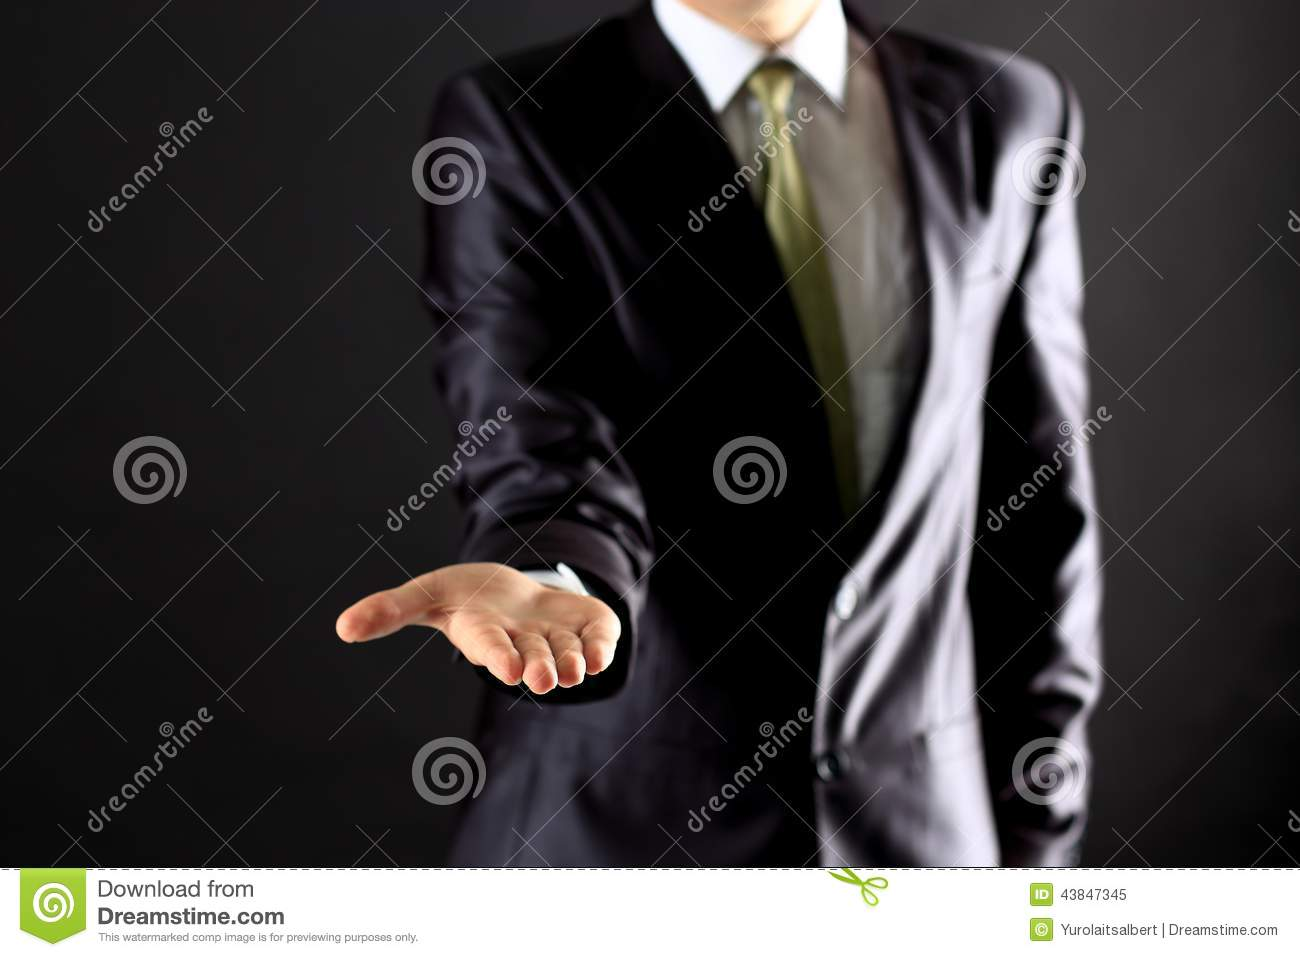 Businessman performing a hand